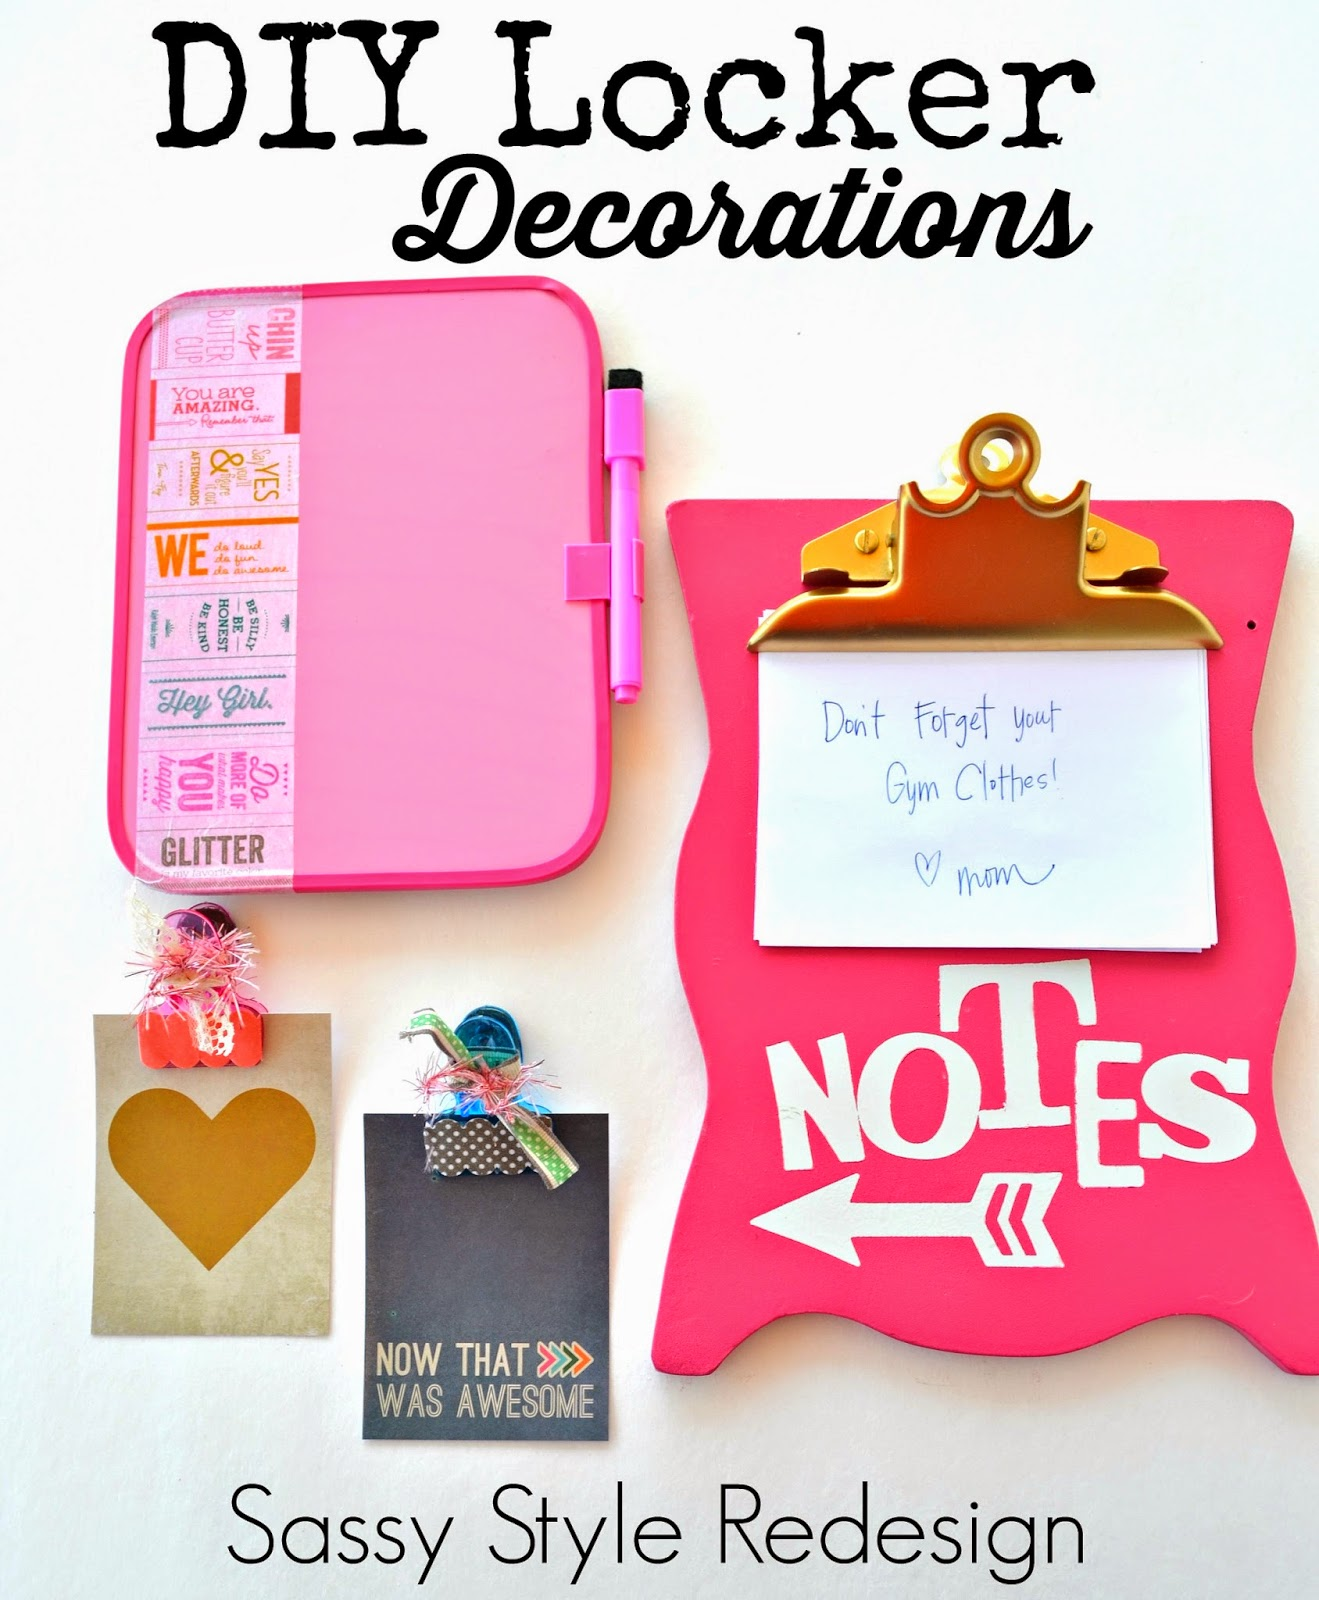 httpwwwsassystyleredesigncom201407diy - Locker Designs Ideas